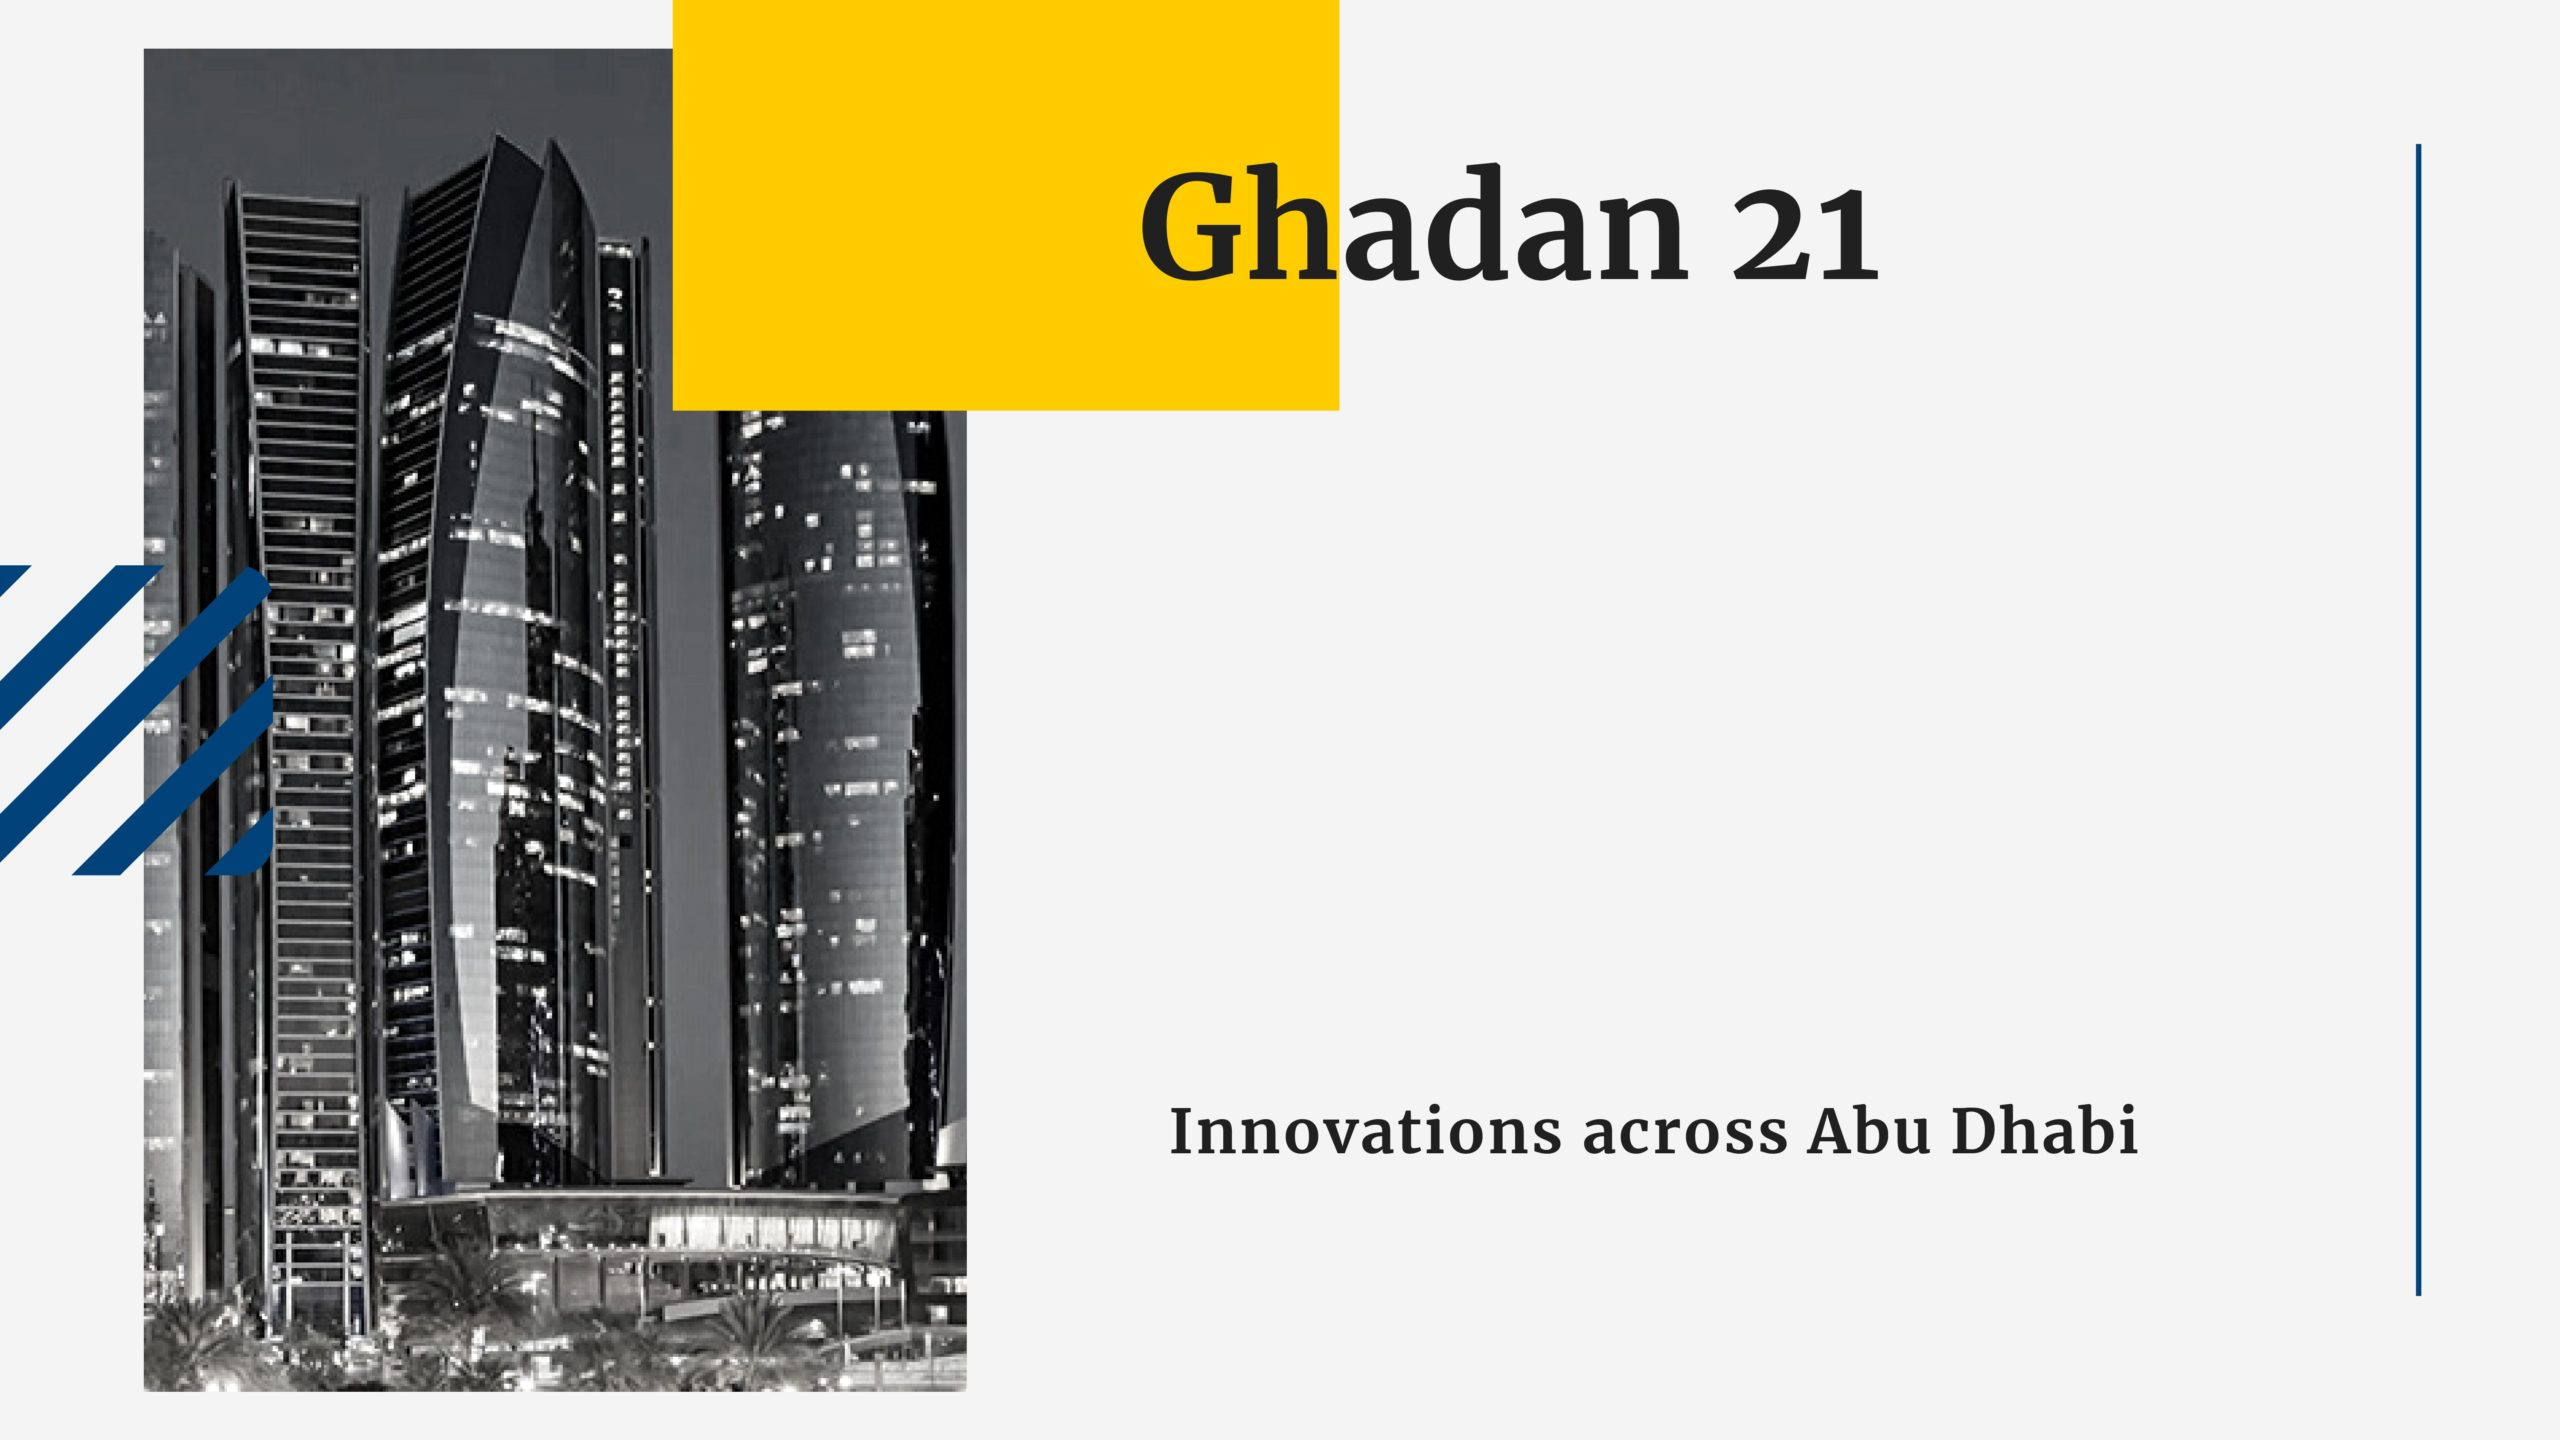 Ghadan 21 Innovations accross Abu Dhabi